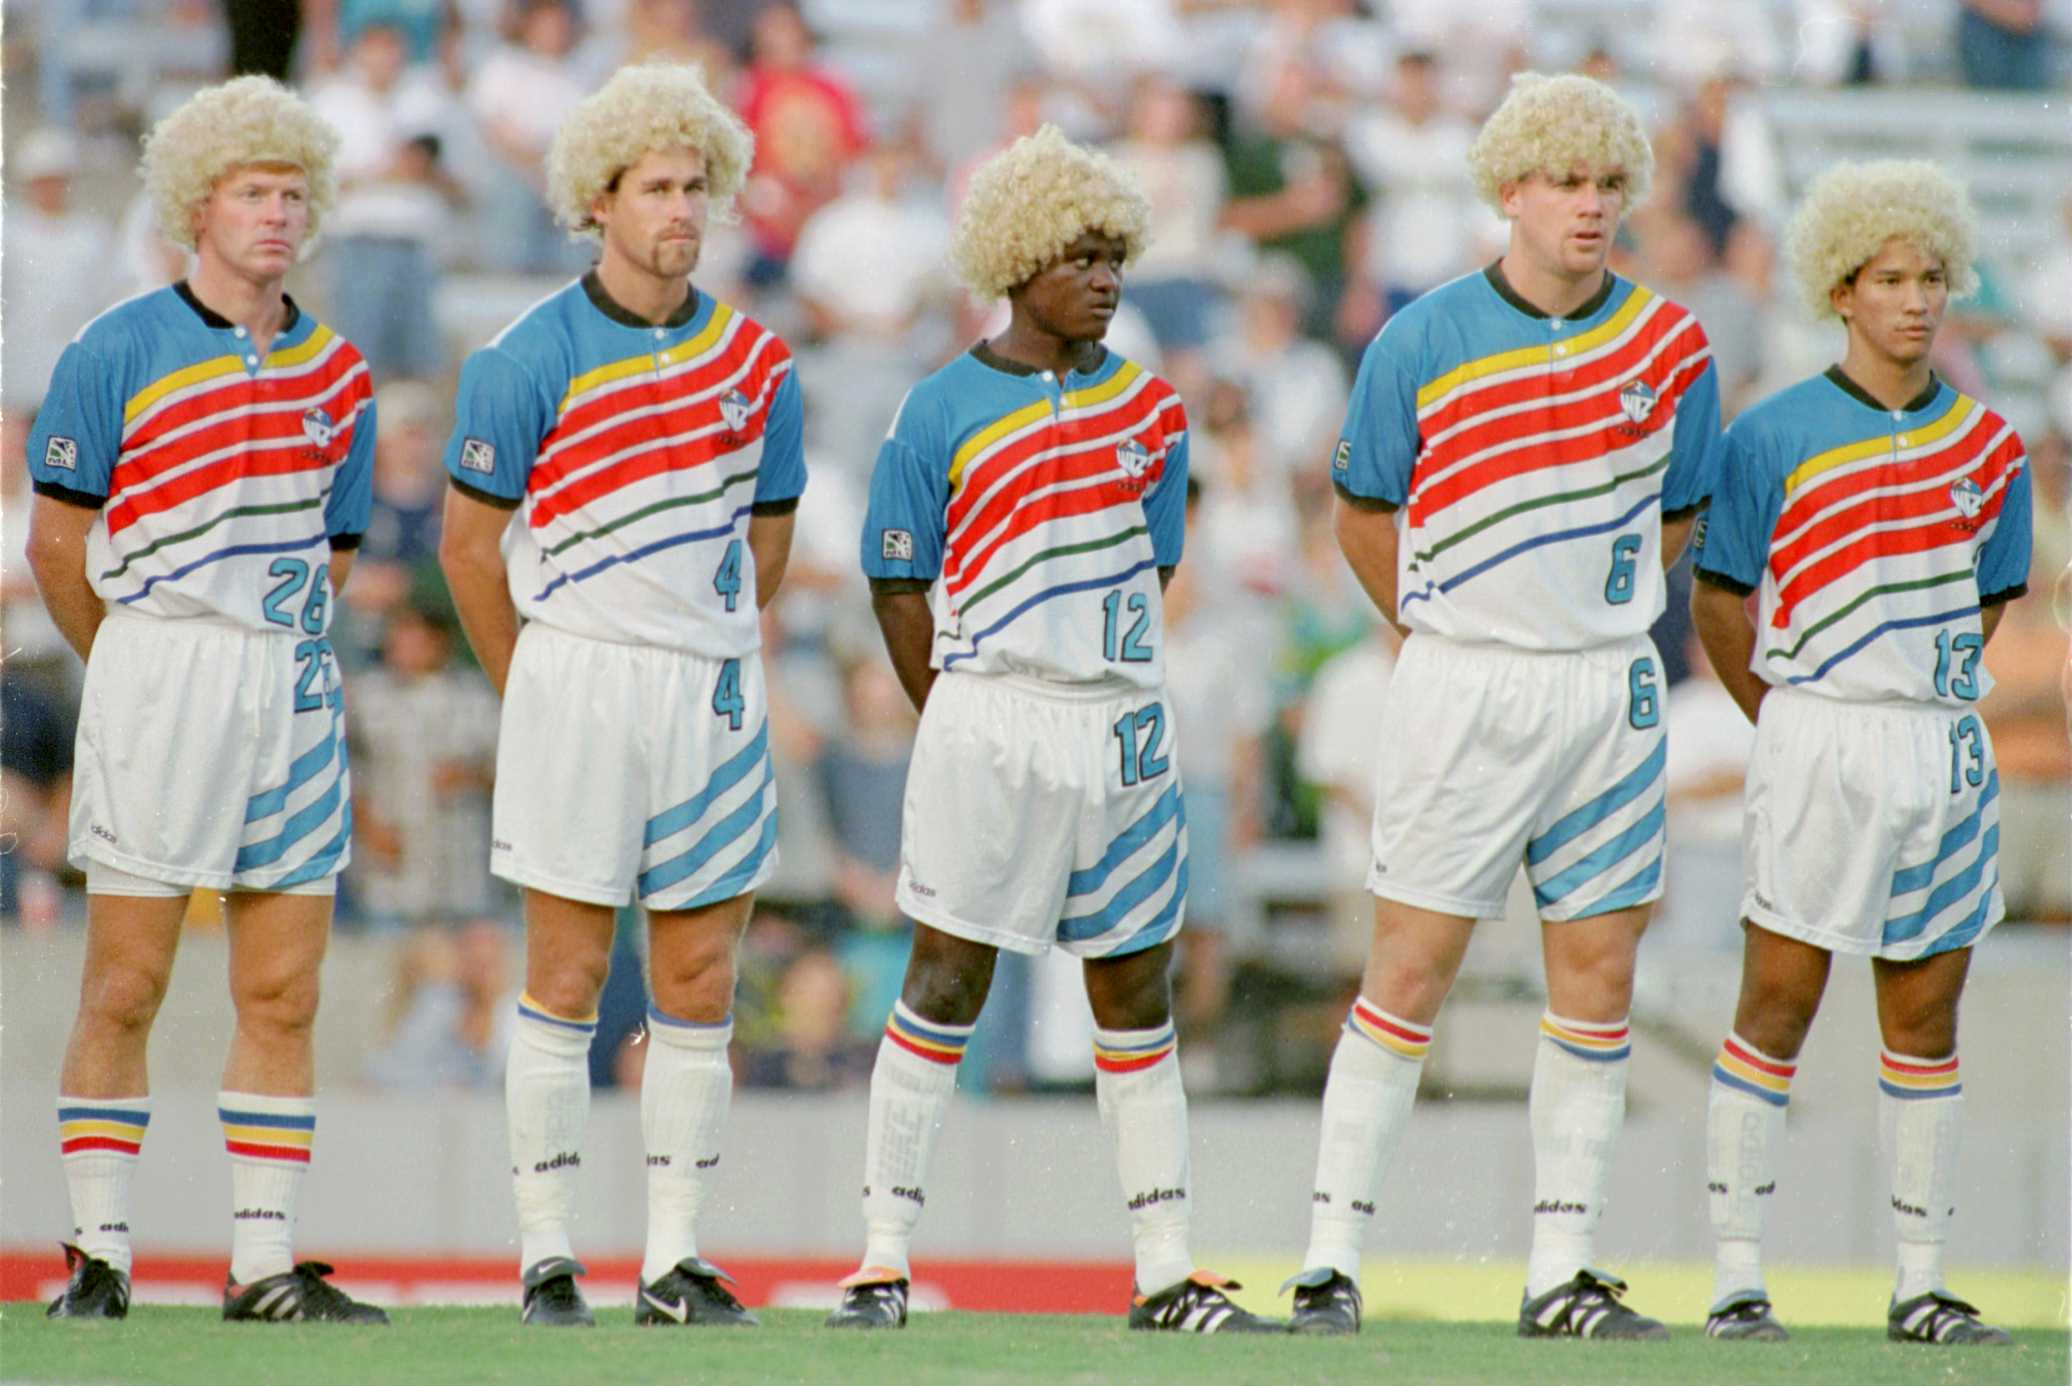 18 Jul 1996: Members of the Kansas City Wiz (#26 Mo Johnston, #4 Scott Uderits, #12 Digital Takawira,#6 Sean Bowers, #13 Mark Chung ) wear wigs before the Tampa Bay versus Kansas City MLS game in Tampa, Florida. They were wearing wigs that were given out to the first 1,000 fans to help celebrate Carlos Valderrama day. Valderrama is known both for his excellant soccer and very floppy hair syle. Mandatory Credit: ANDY LYONS/ALLSPORT